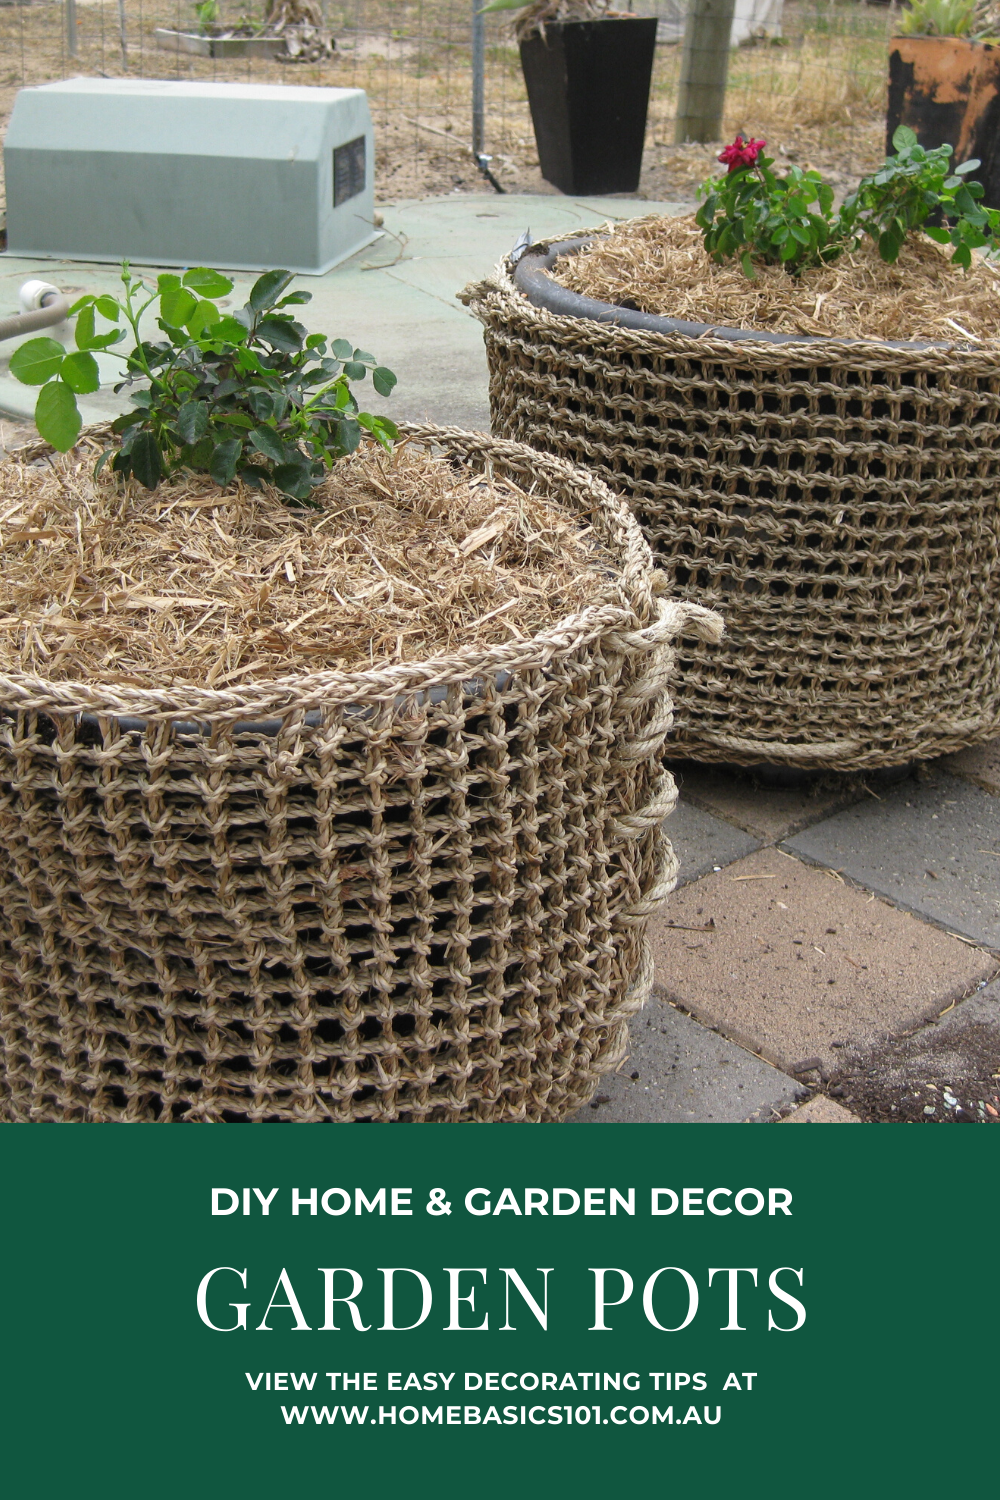 How to Decorate Pots